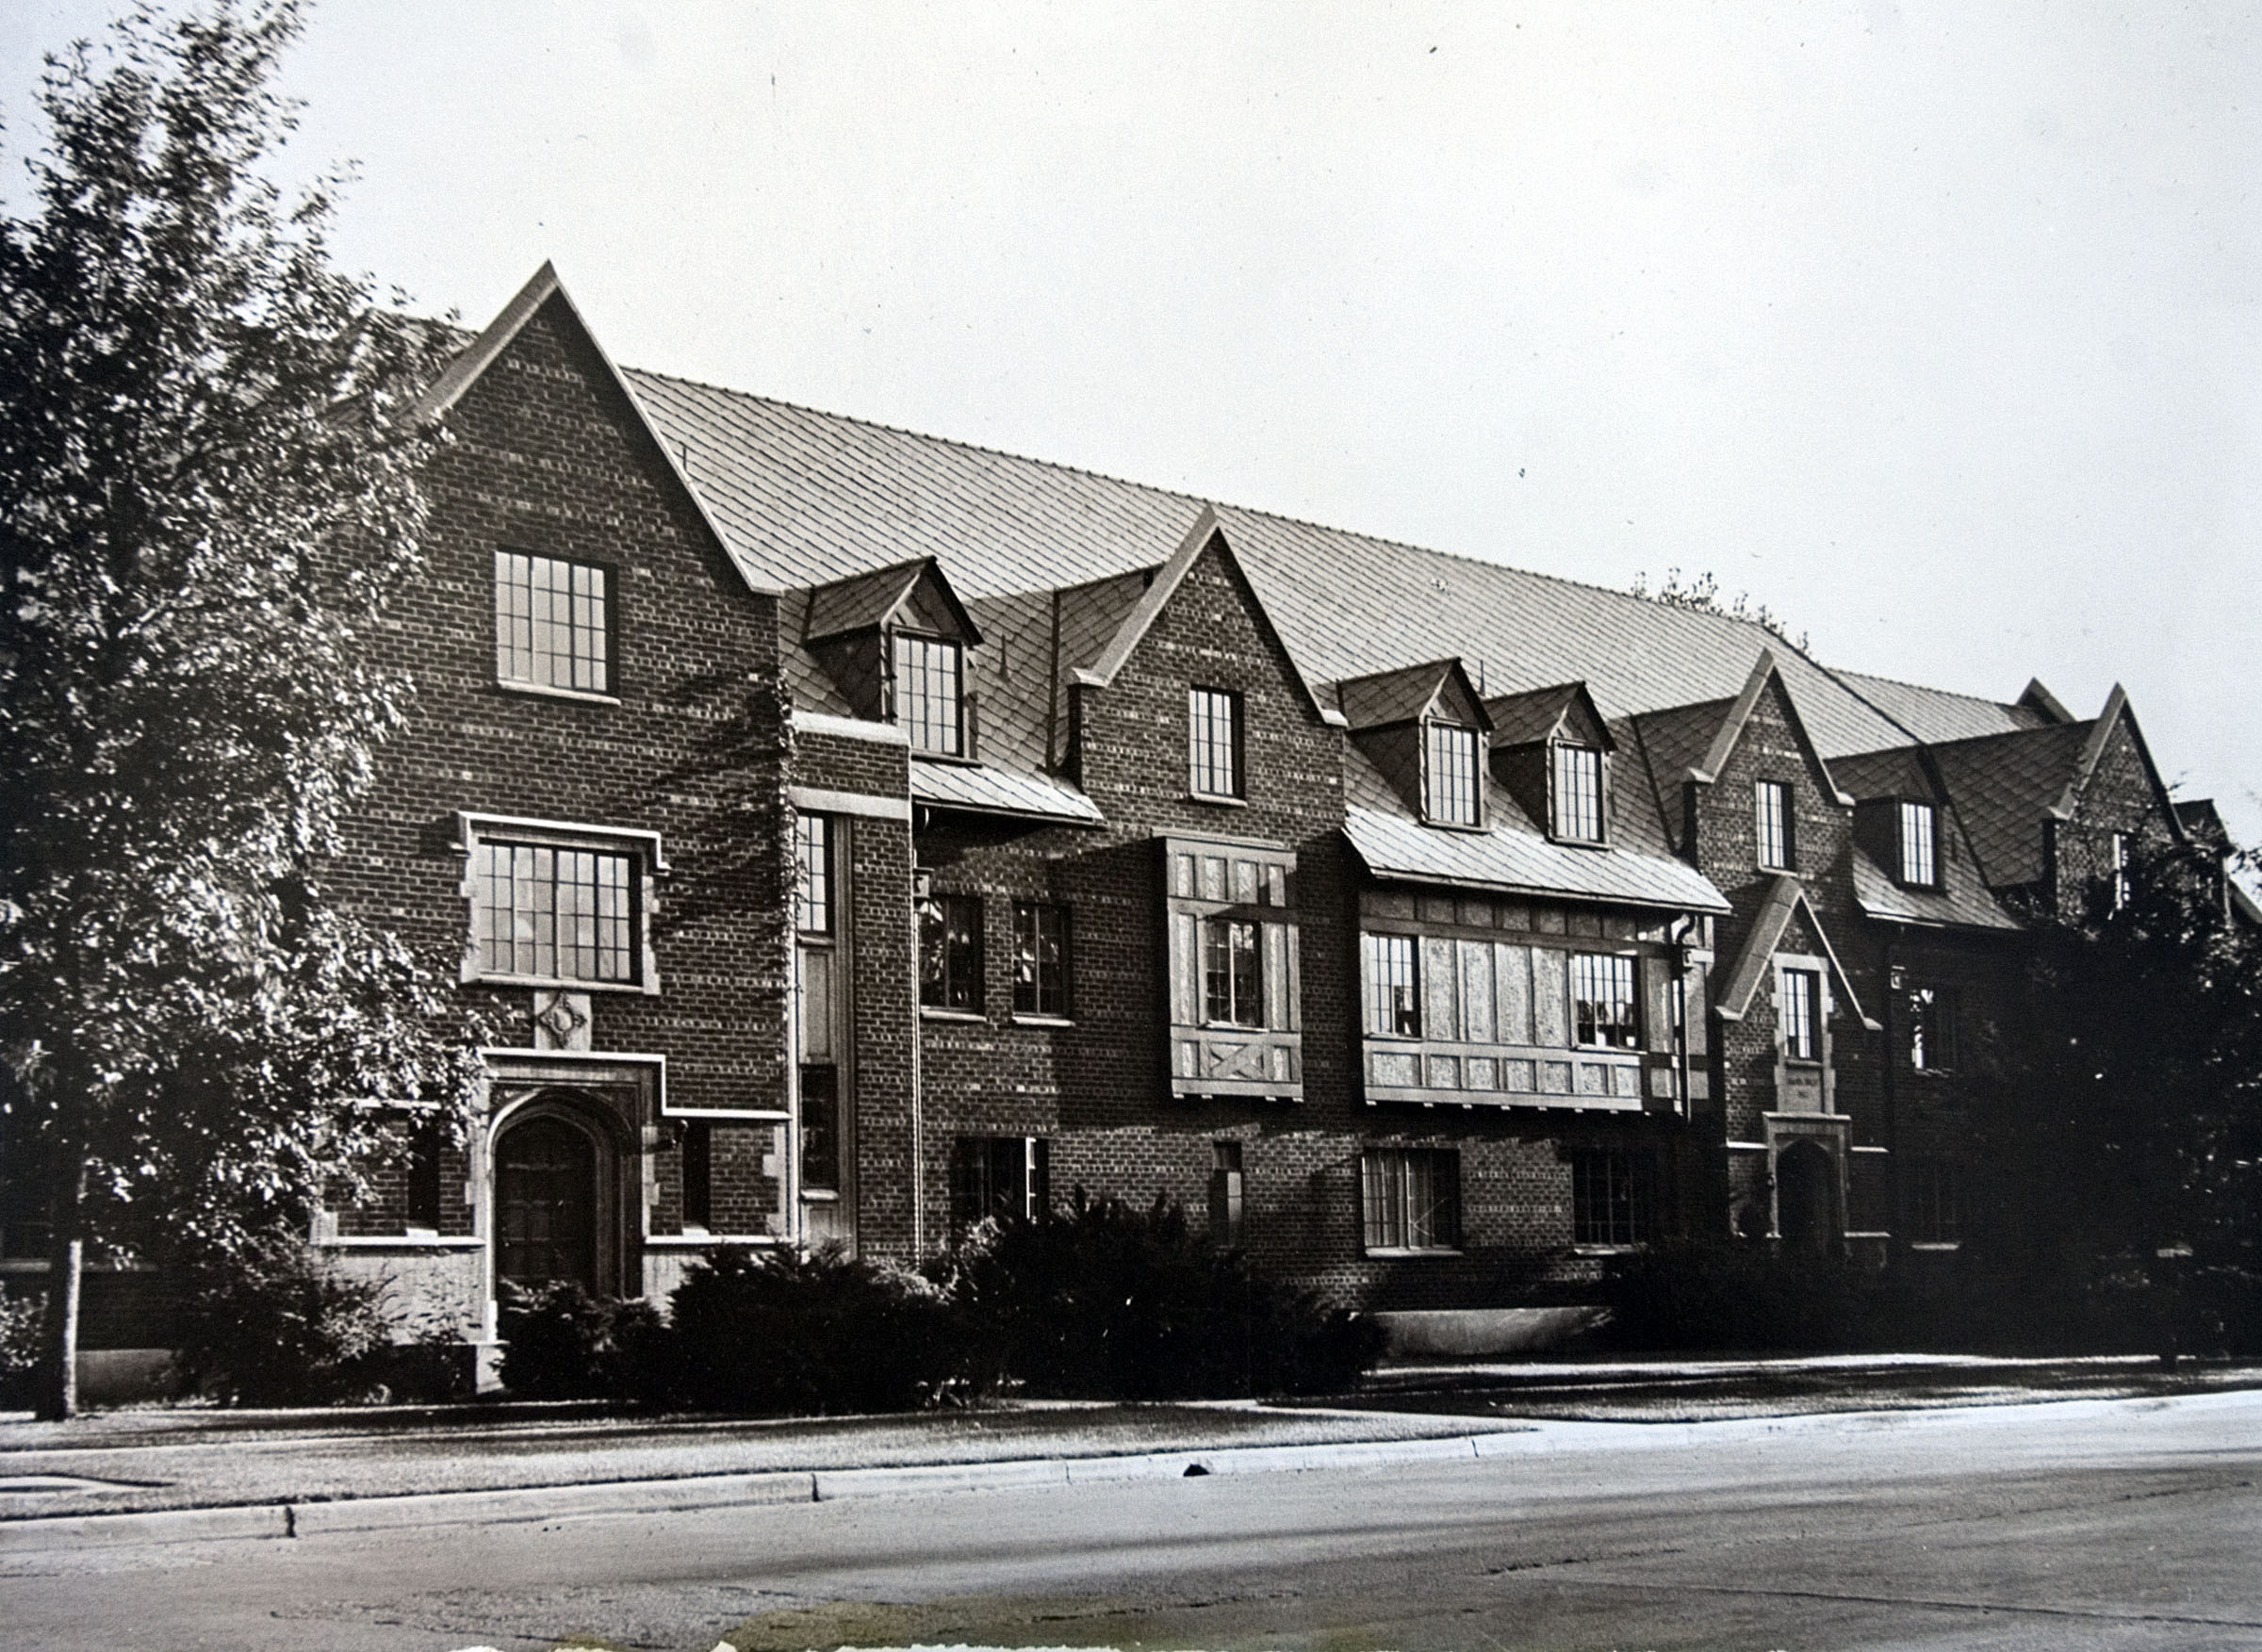 """The Amanda Knight Hall, a Brigham Young University dormitory, was assigned to the Language Training Mission in July of 1964. It served as a residence hall and classroom primarily for German9speaking missionaries until August 1976."" — This is the caption information found on the frame plaque accompany this photo, one nearly dozen historical photos showing the development of the Language Training Mission and Missionary Training Center facilities in Provo since the 1960s."